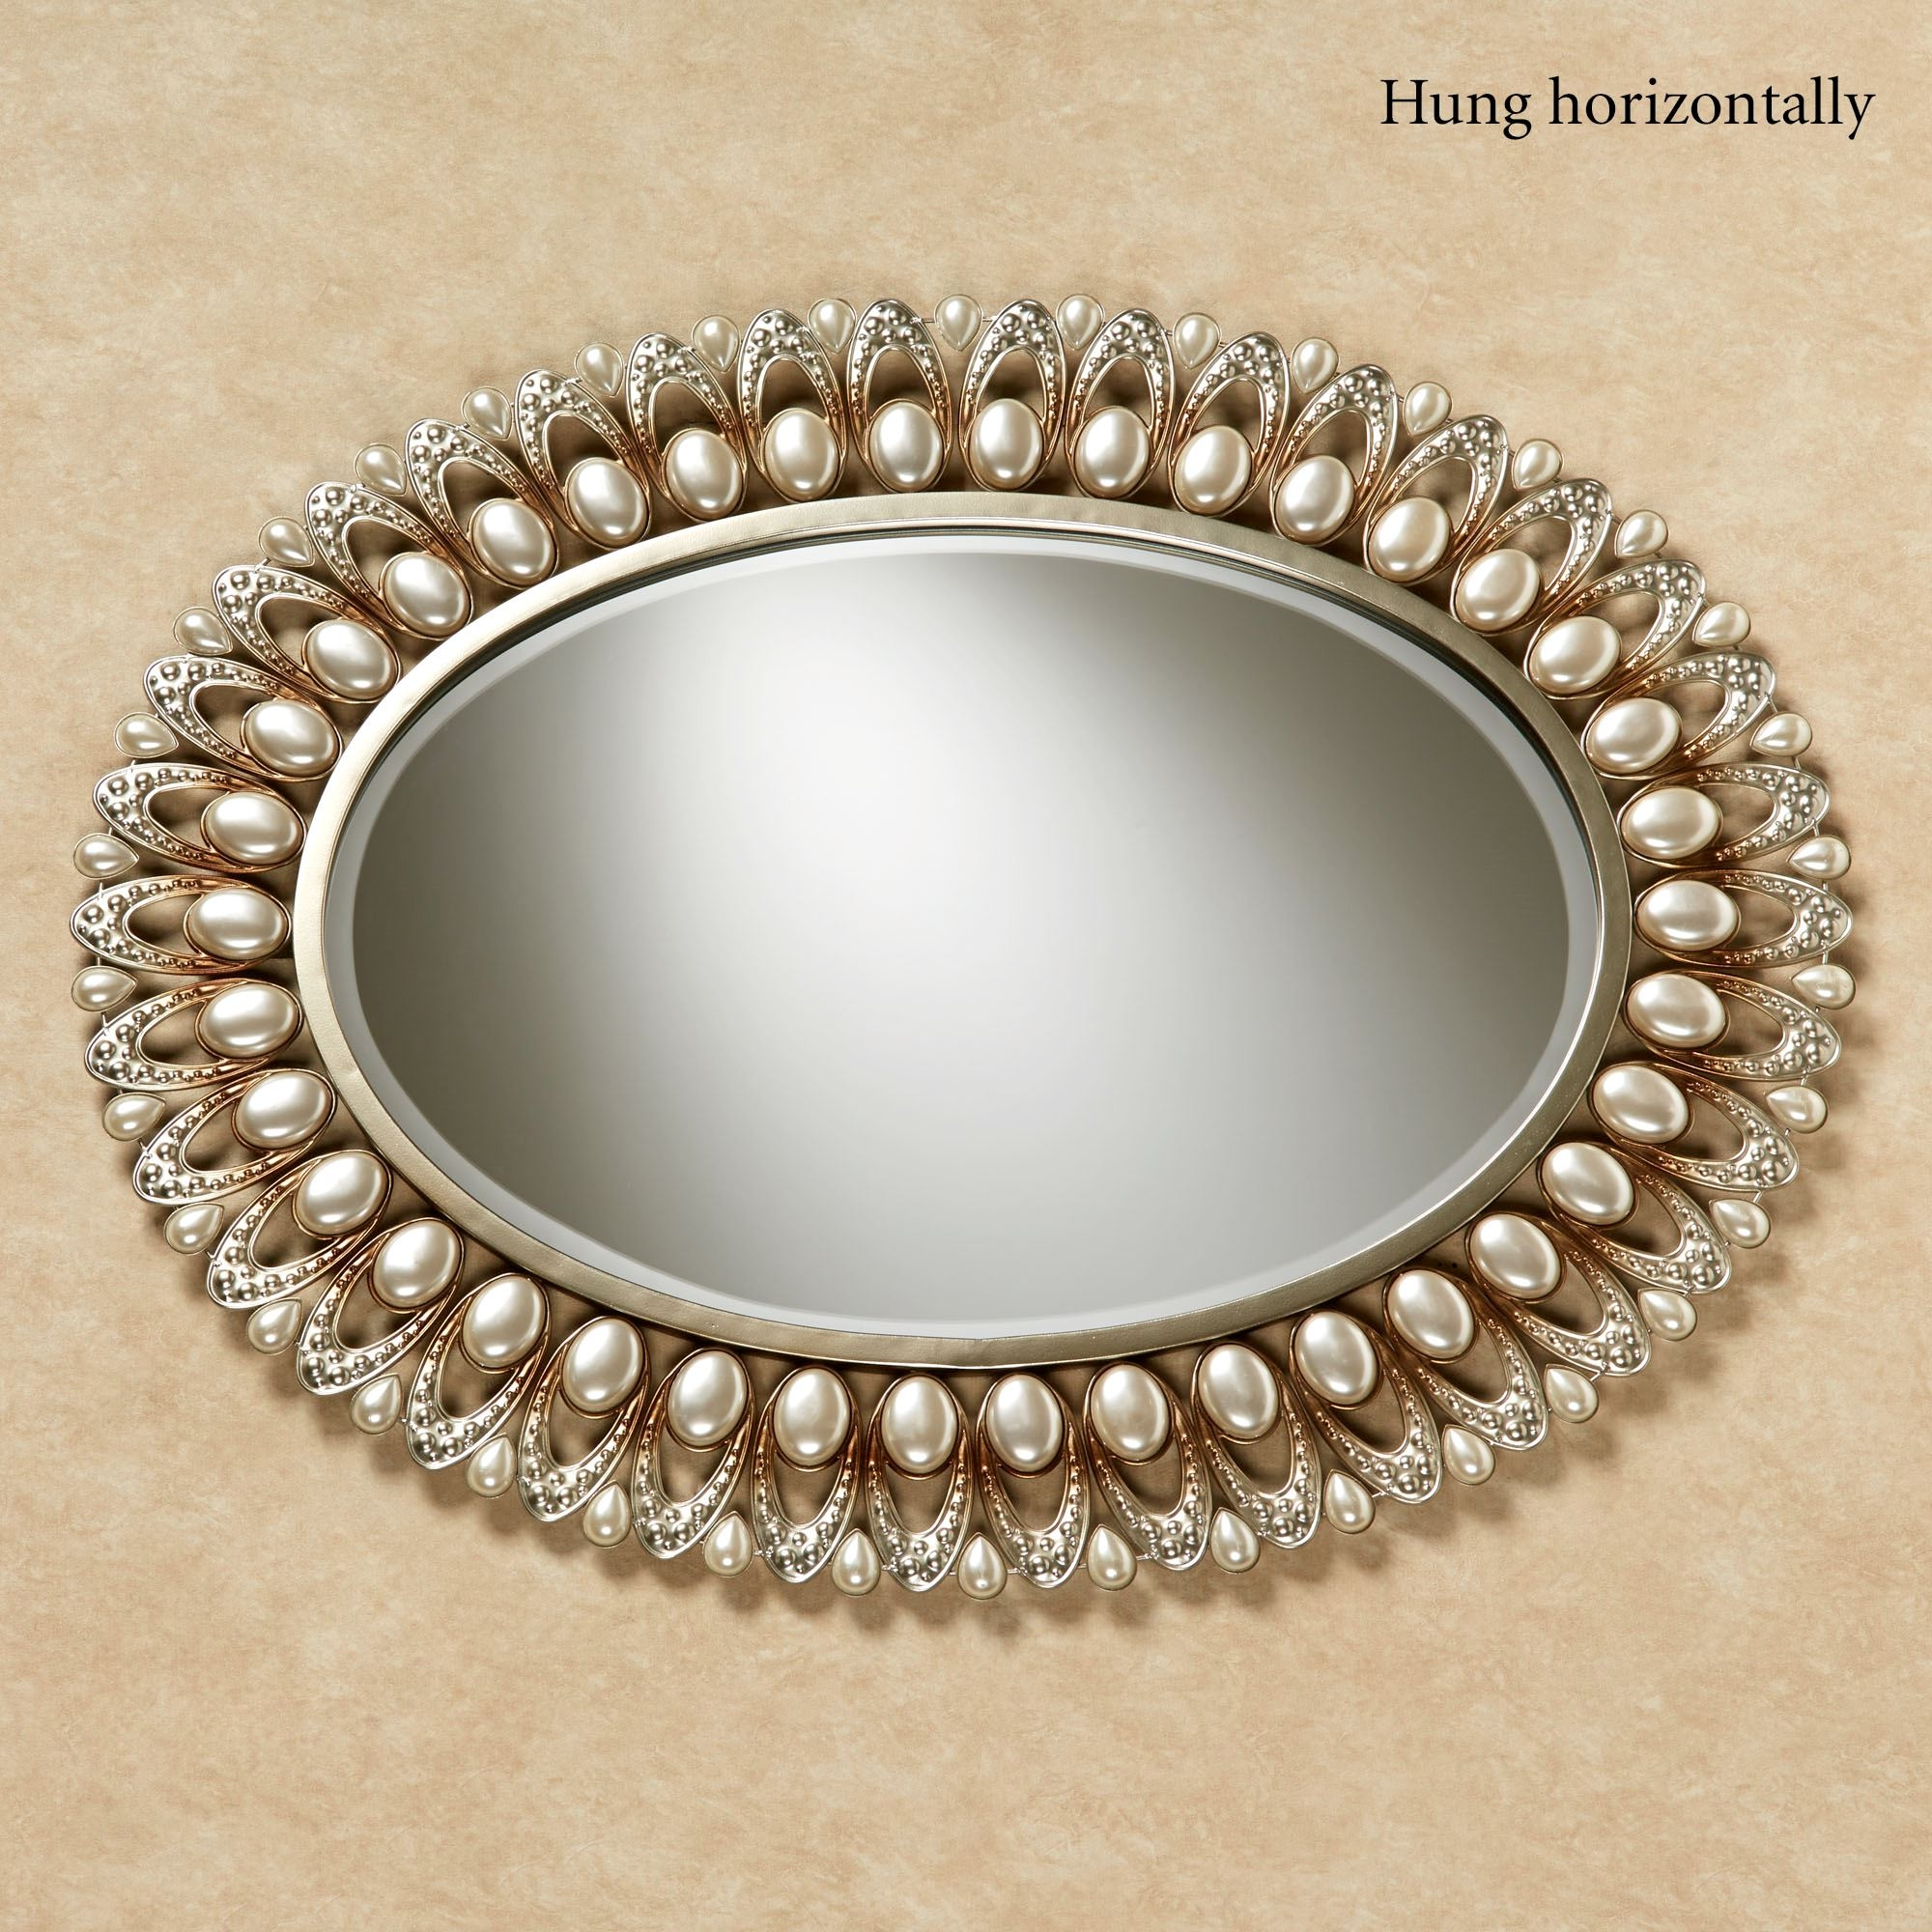 Julietta Pearl Oval Wall Mirror With Champagne Wall Mirror (View 14 of 15)